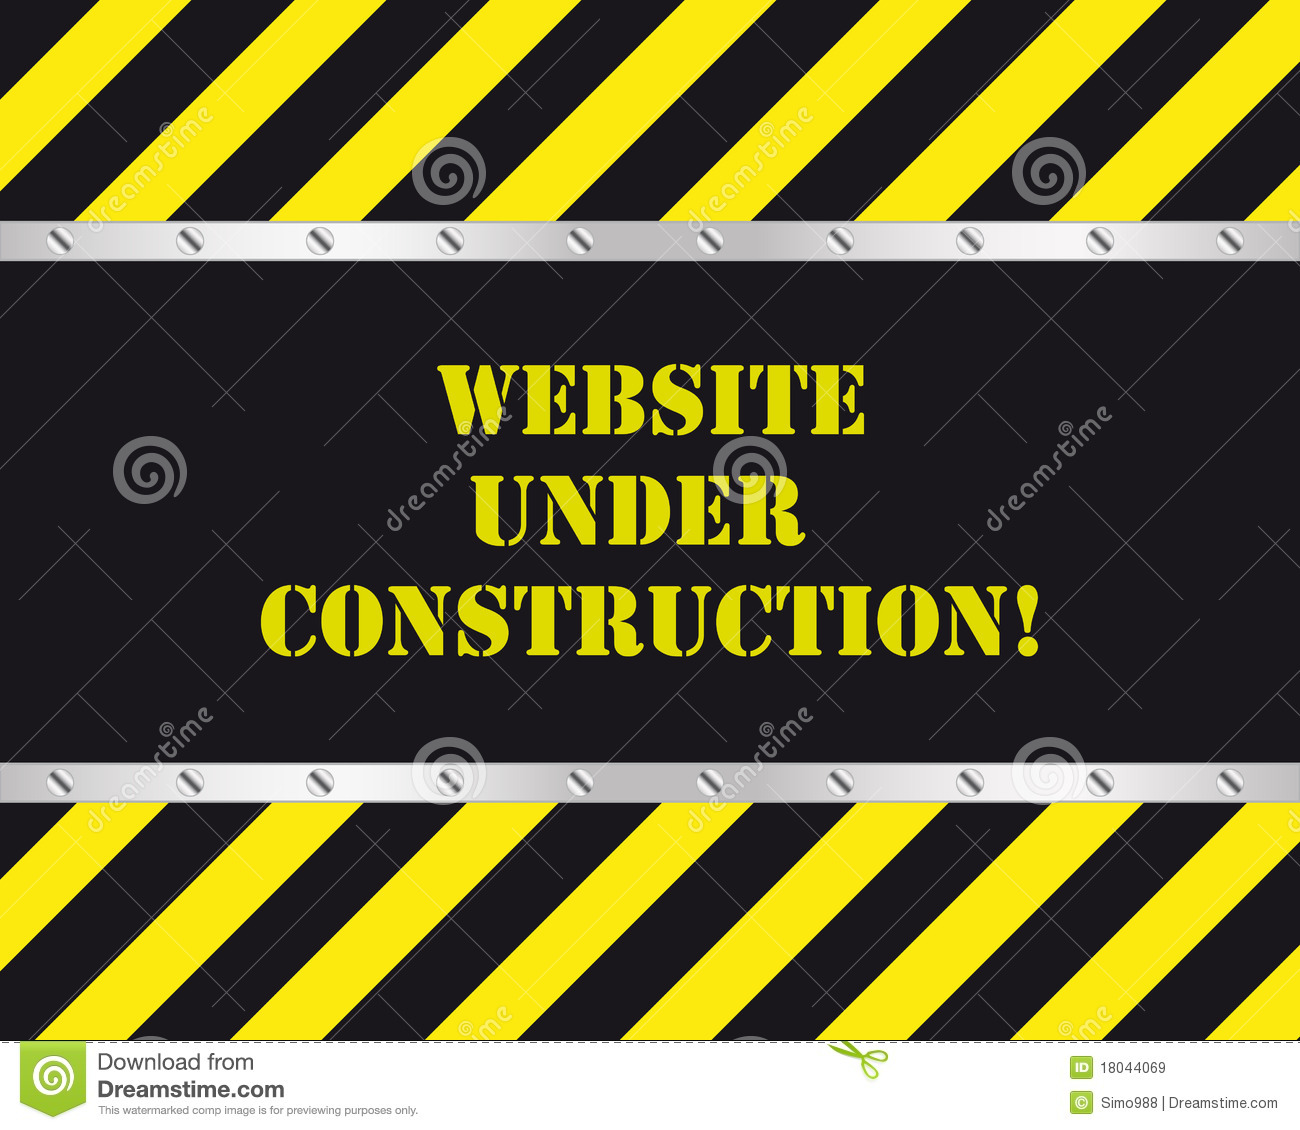 Website Under Construction Royalty Free Stock Images ...